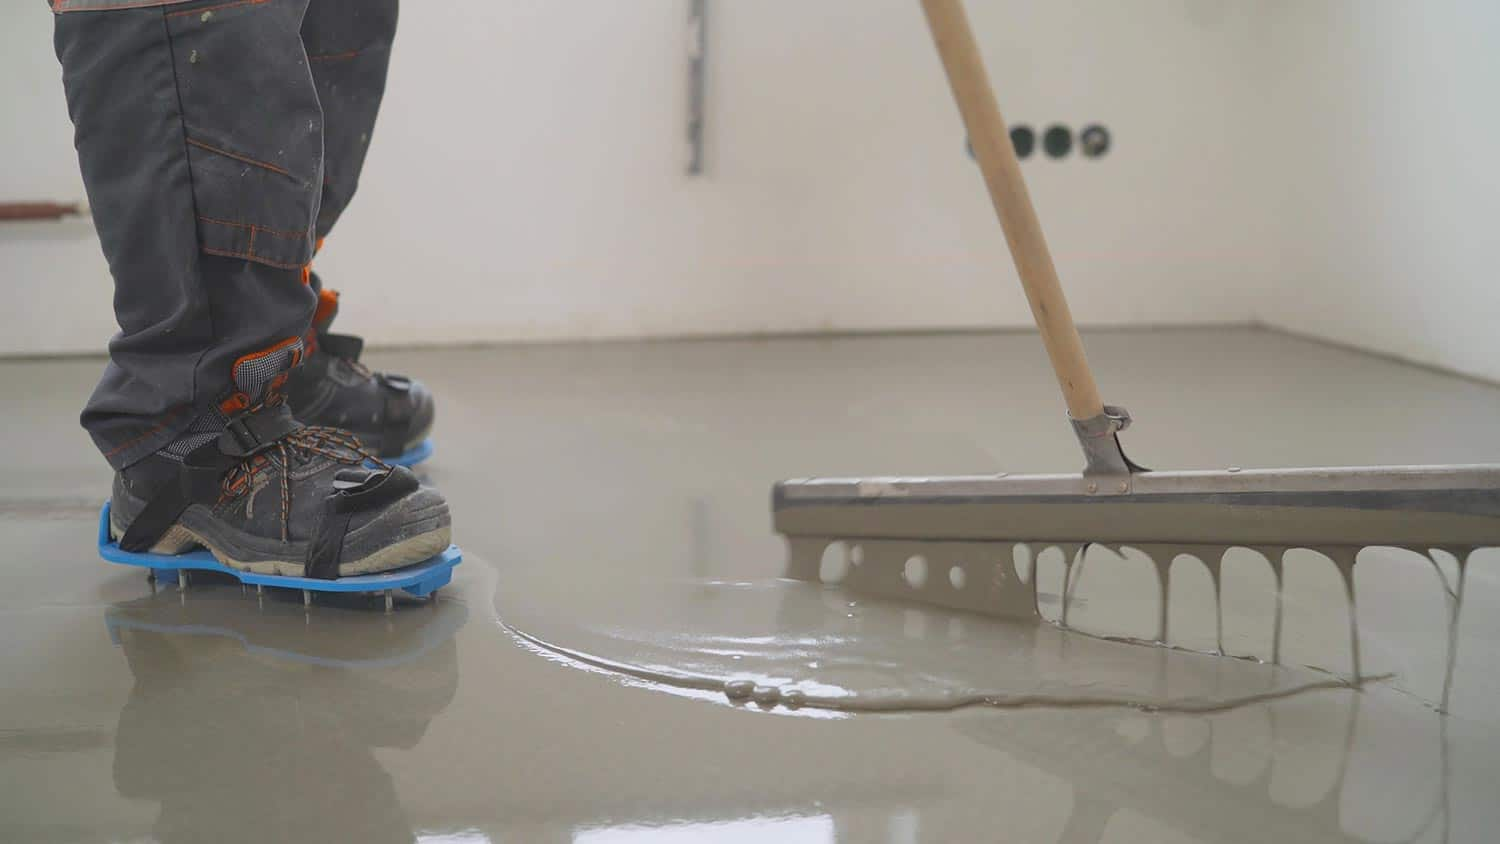 A worker in macro steps applies the solution to the floor